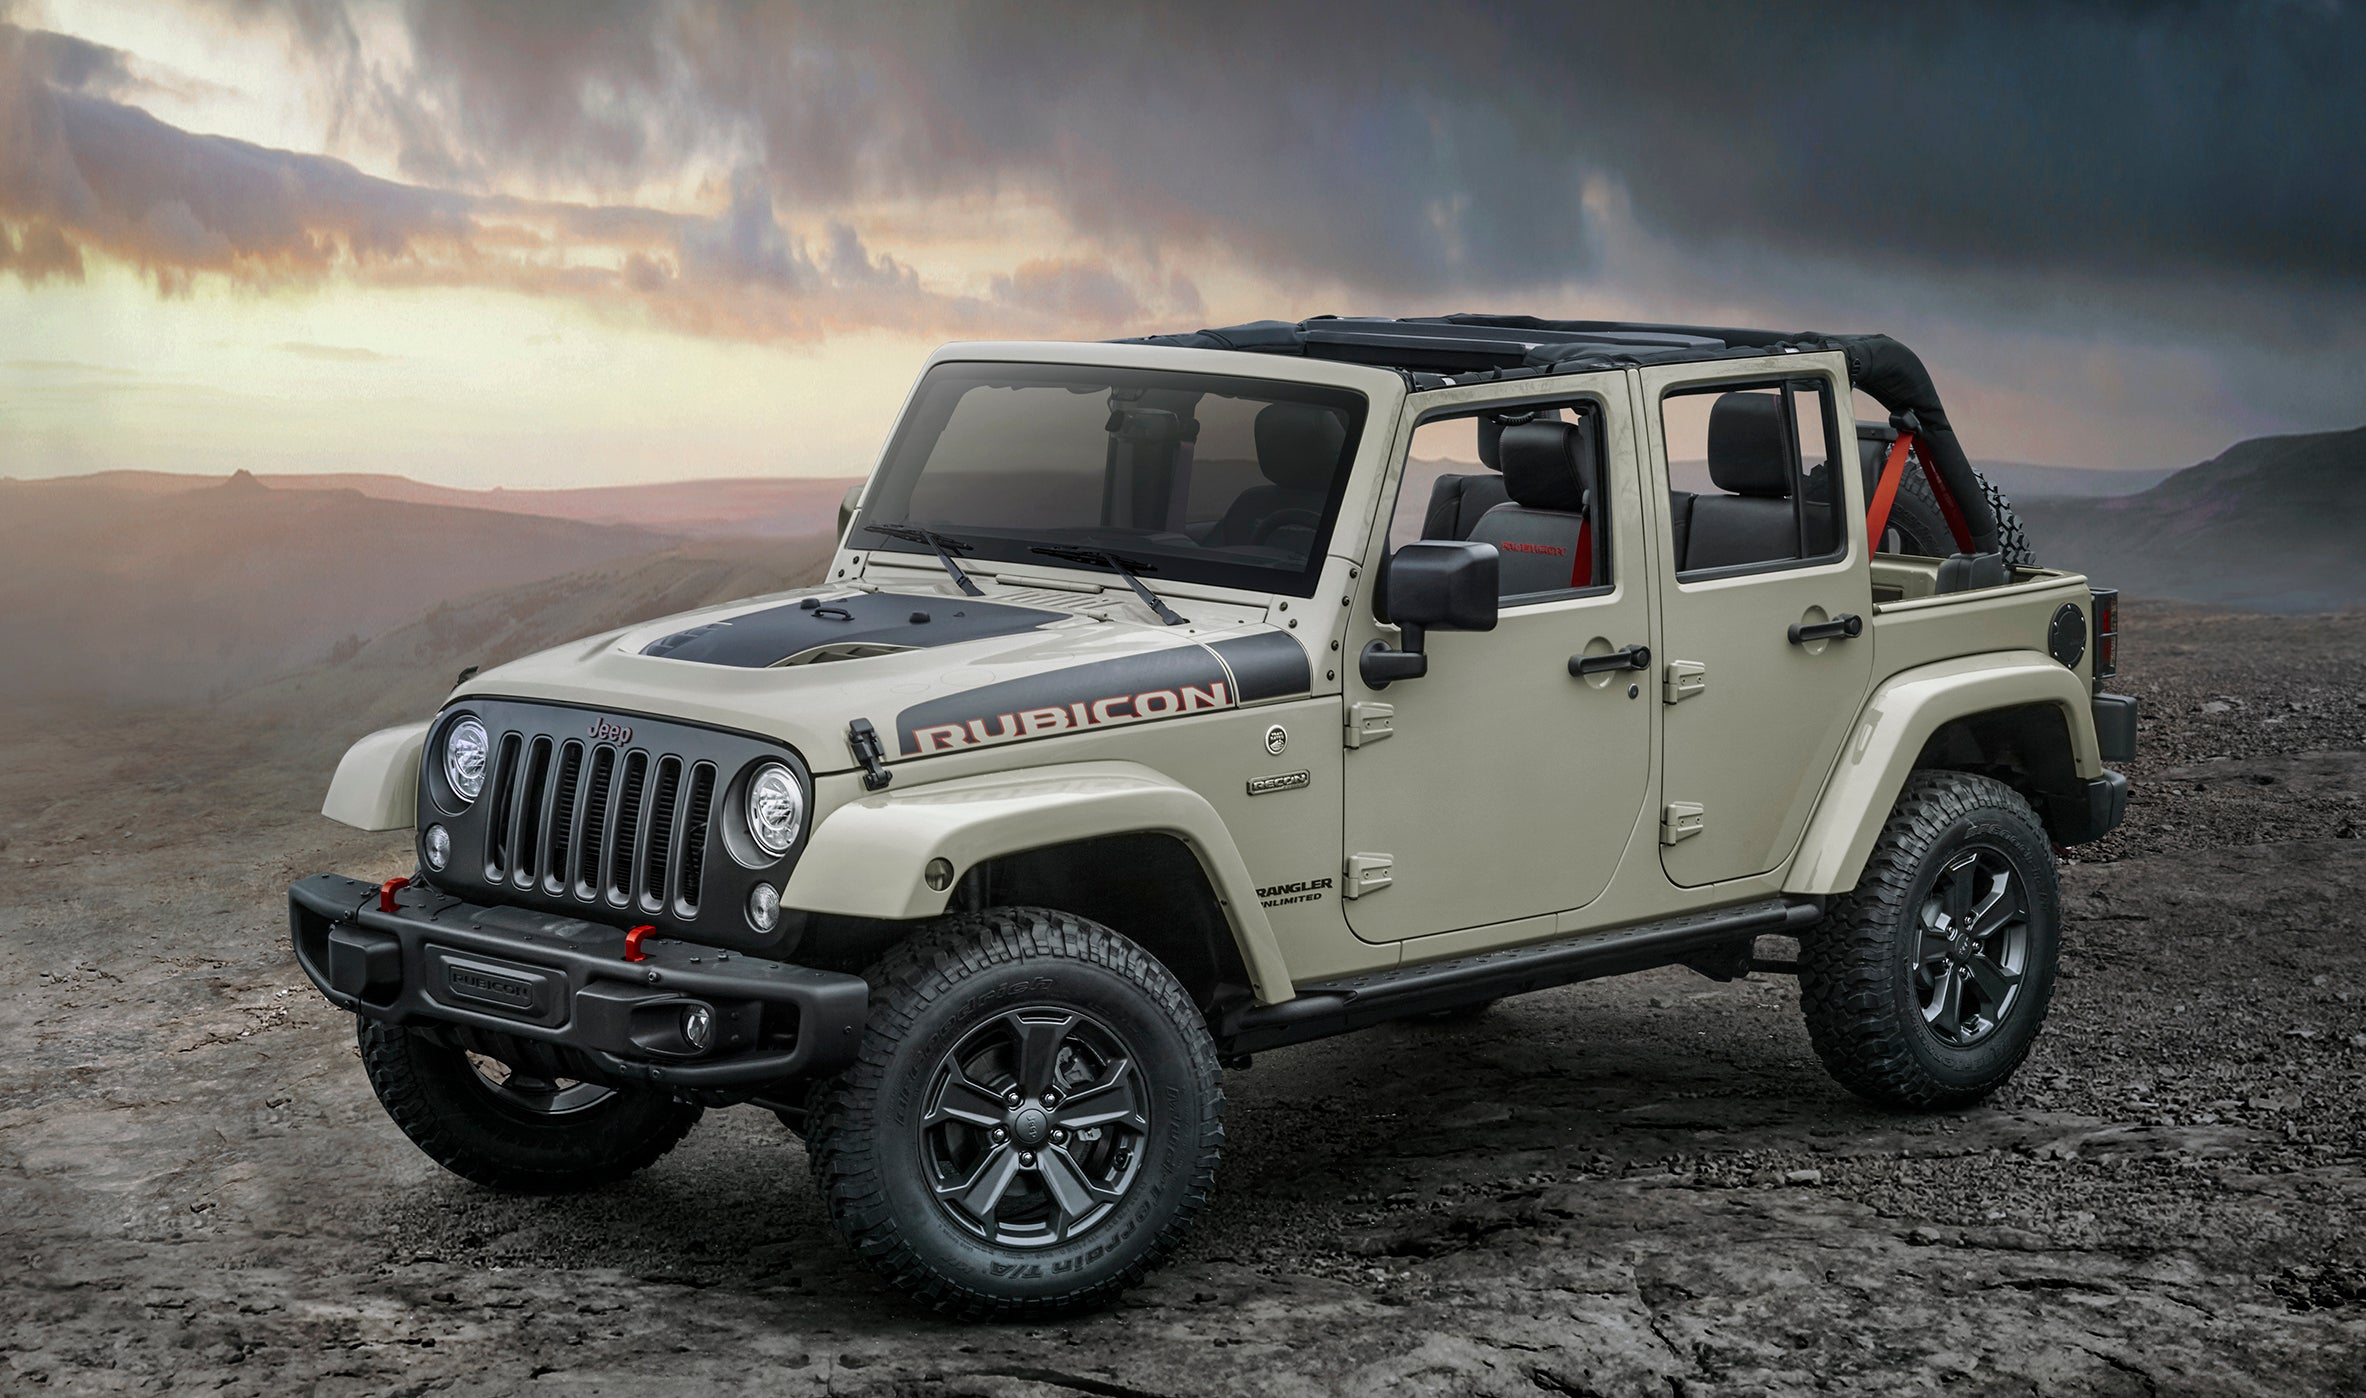 jeep seriously cars as after well brands new dodge chrysler italian companies news the in engaged of reviews pickup are and fiat american acquisition toro